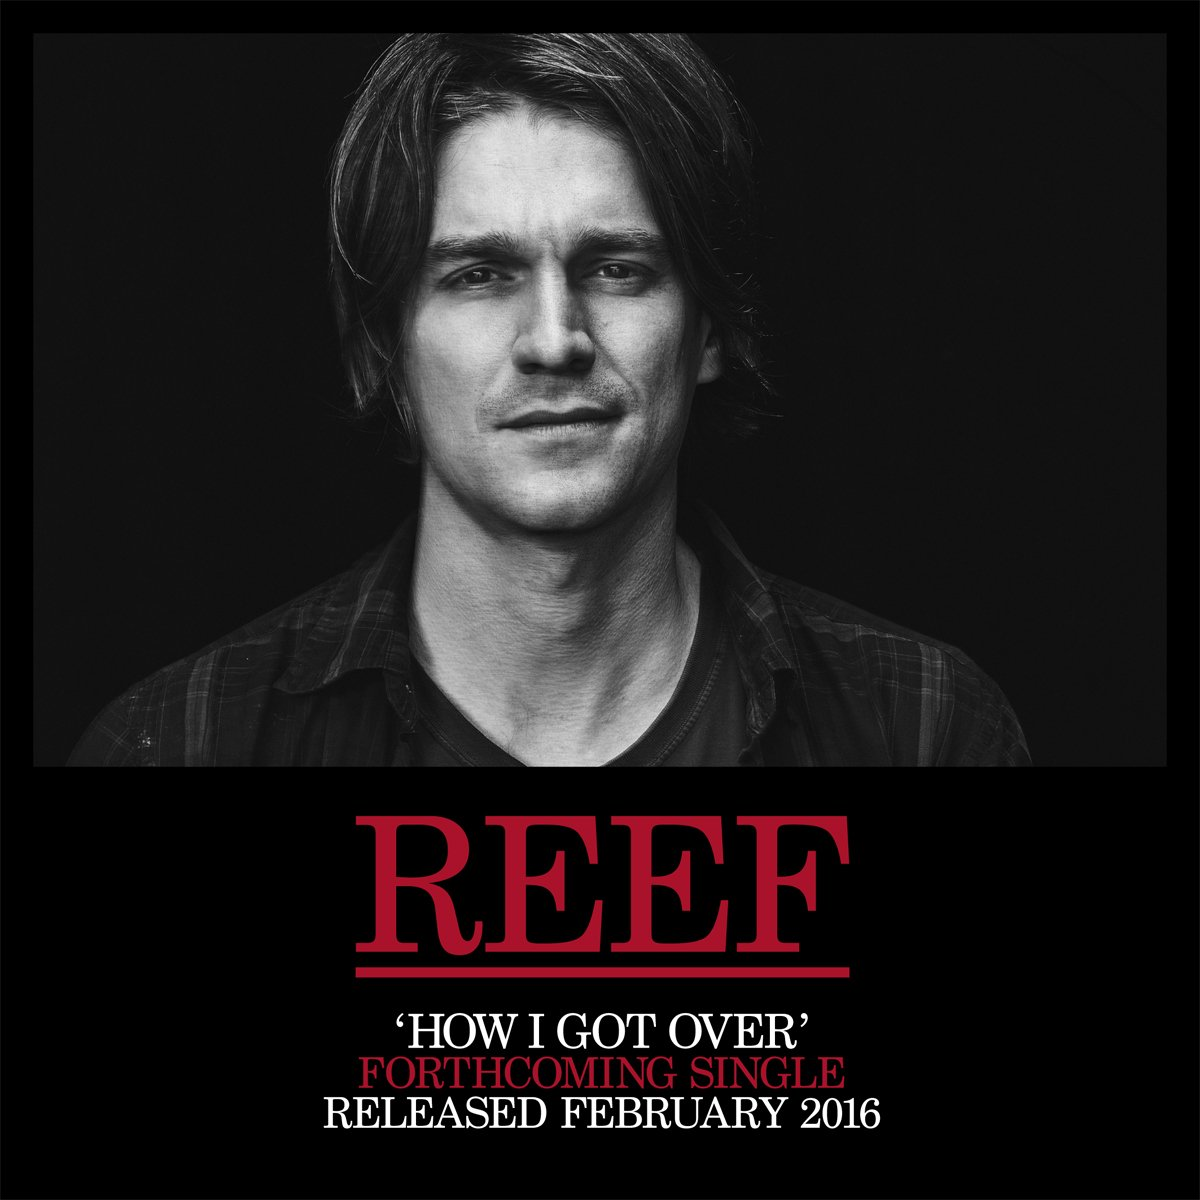 RT @reefband: Exciting times in 2016! UK Tour and our new single in February, can't wait for you to hear it! #reefband #newmusic https://t.…